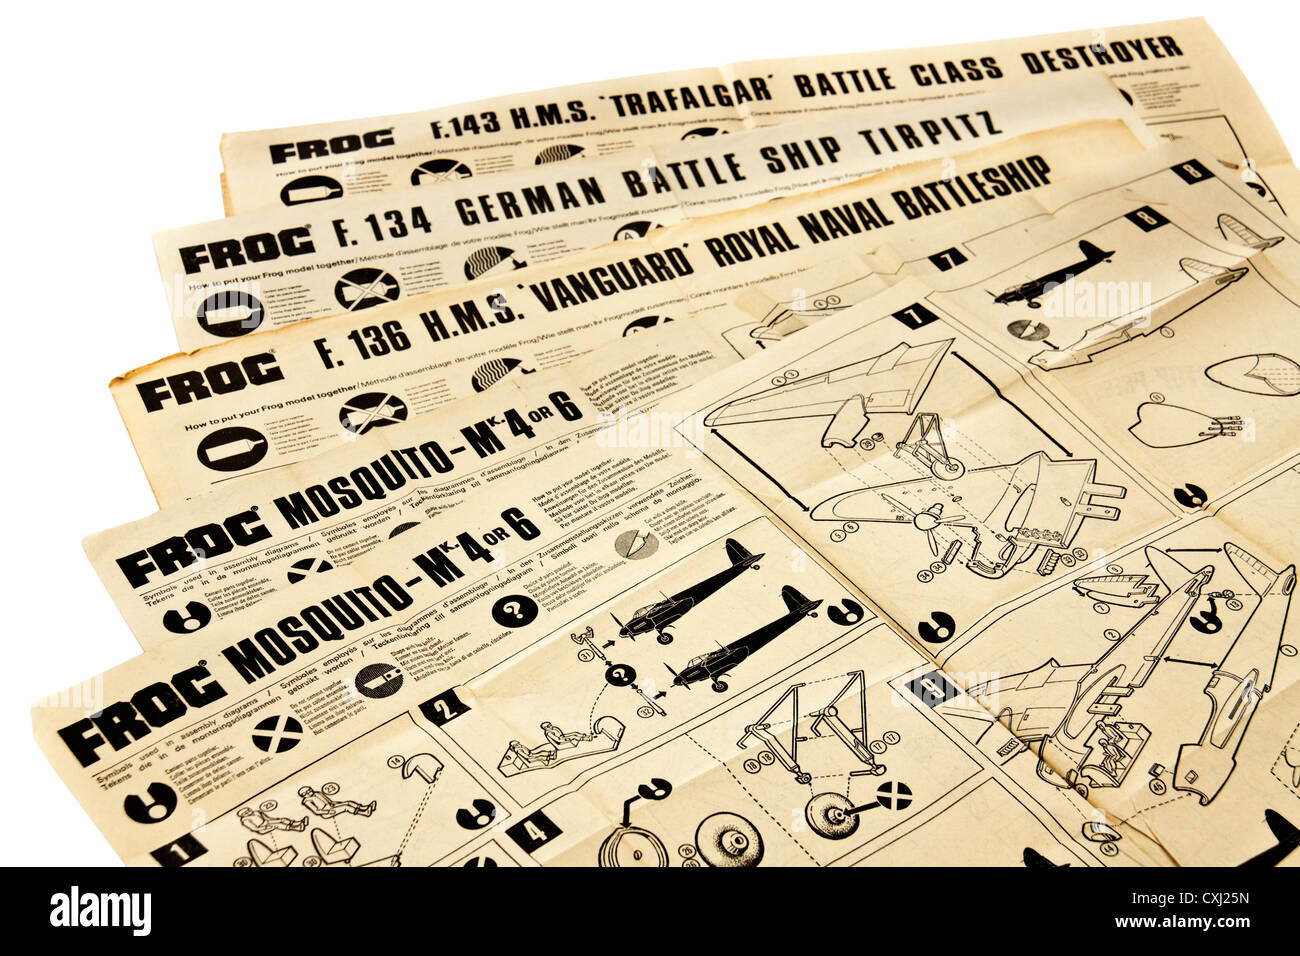 Collection of vintage assembly instructions for FROG (IMA Ltd) battleship and aircraft models - Stock Image